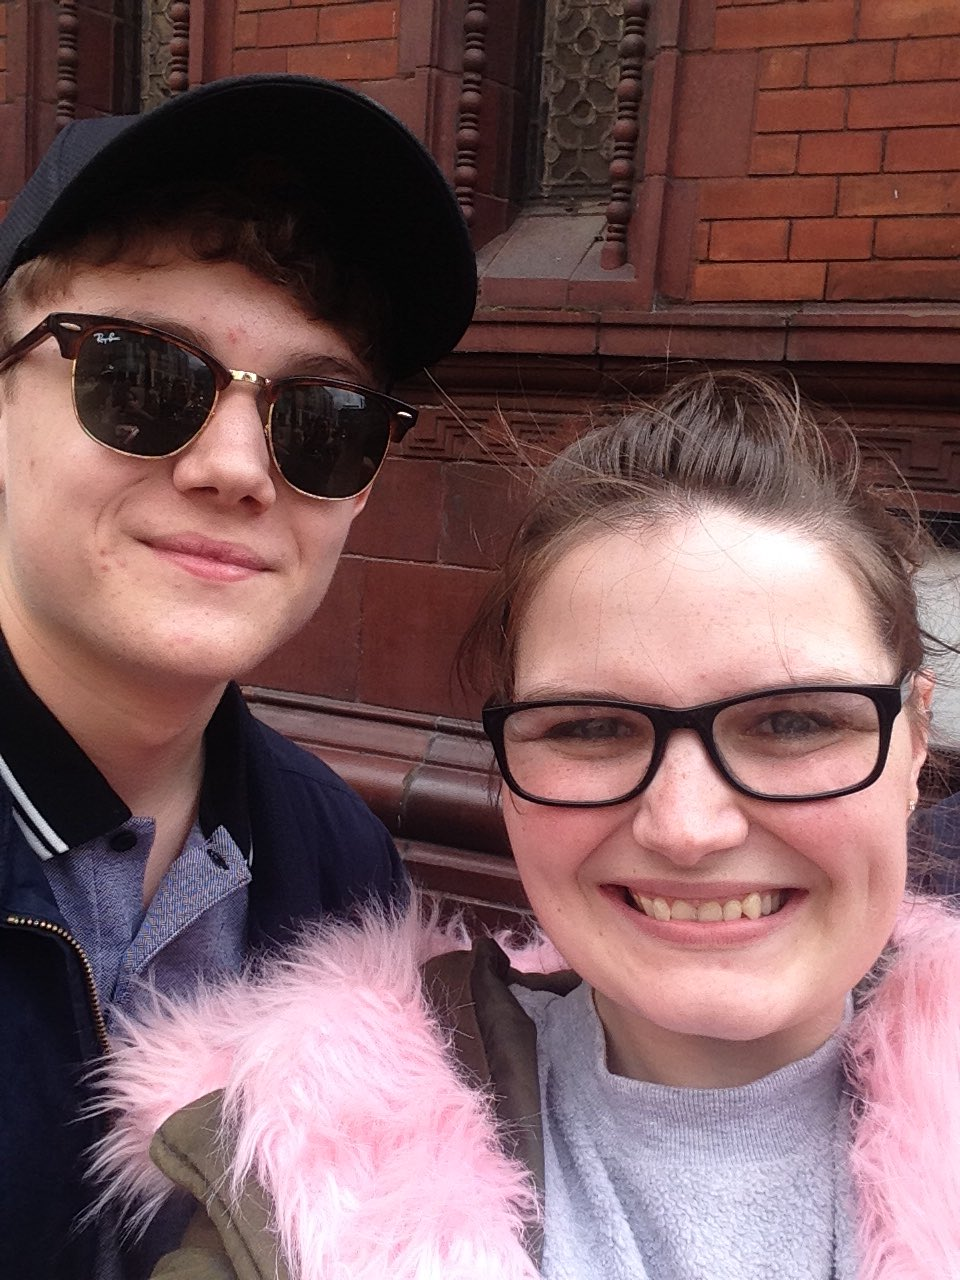 happy birthday dude! Hope you have the best day ever! As you deserve it so much  x